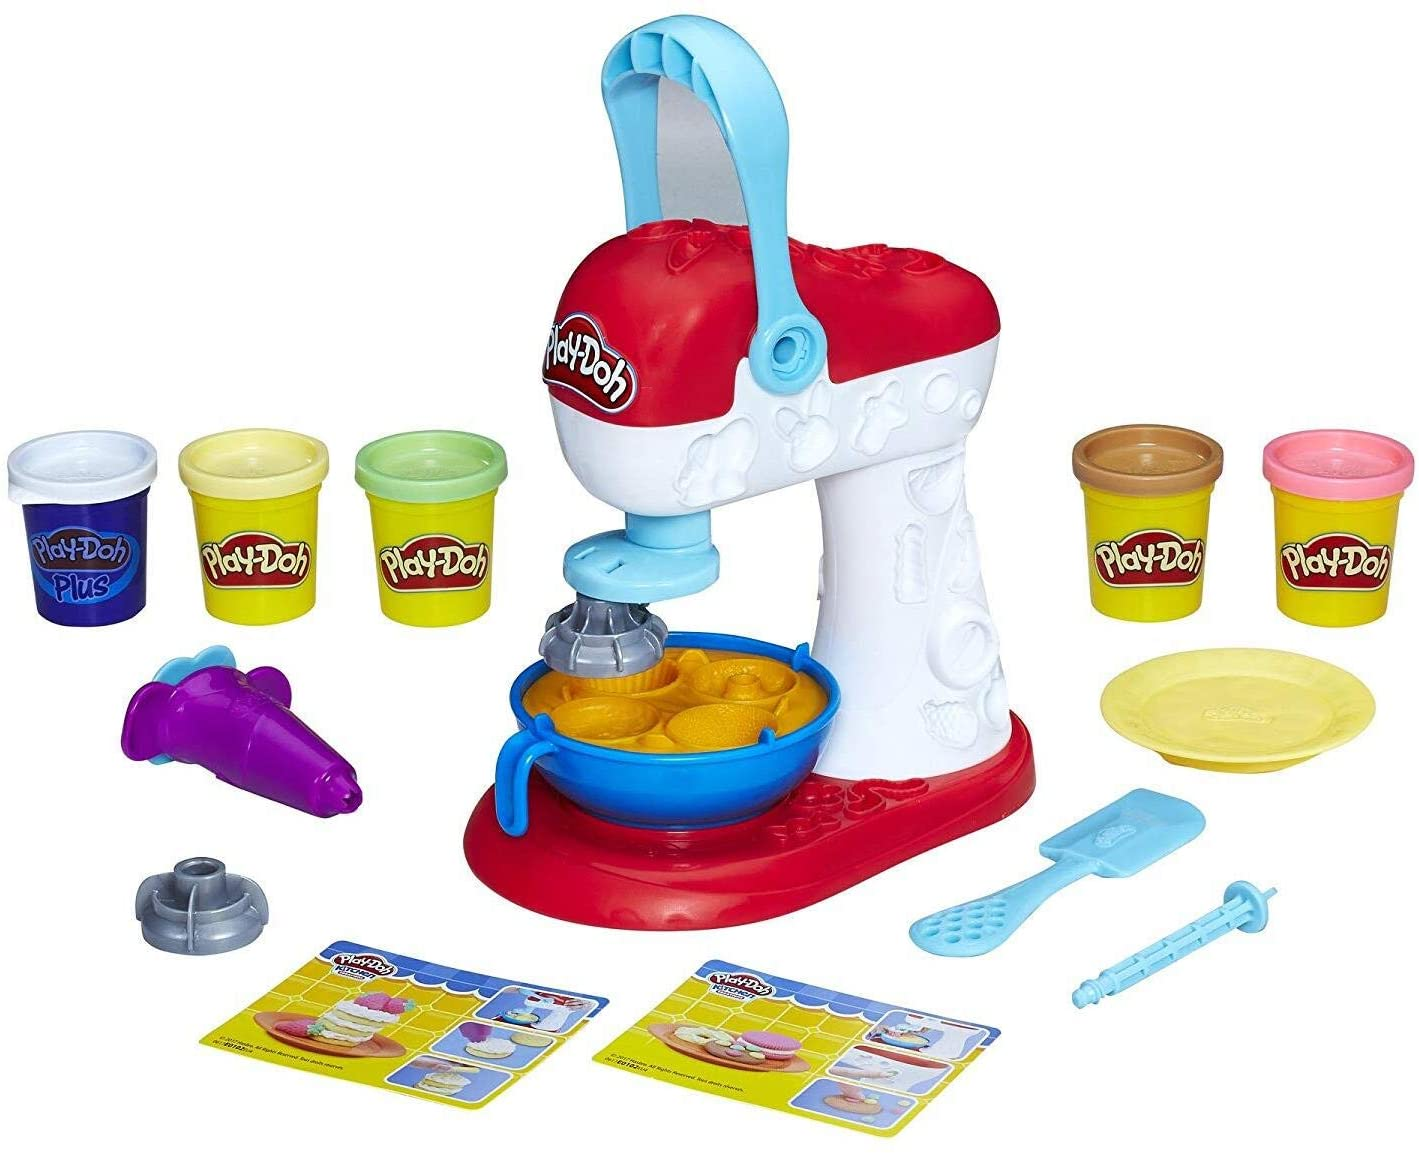 Play-Doh Kitchen Creations Spinning Treats Mixer - Wild Willy